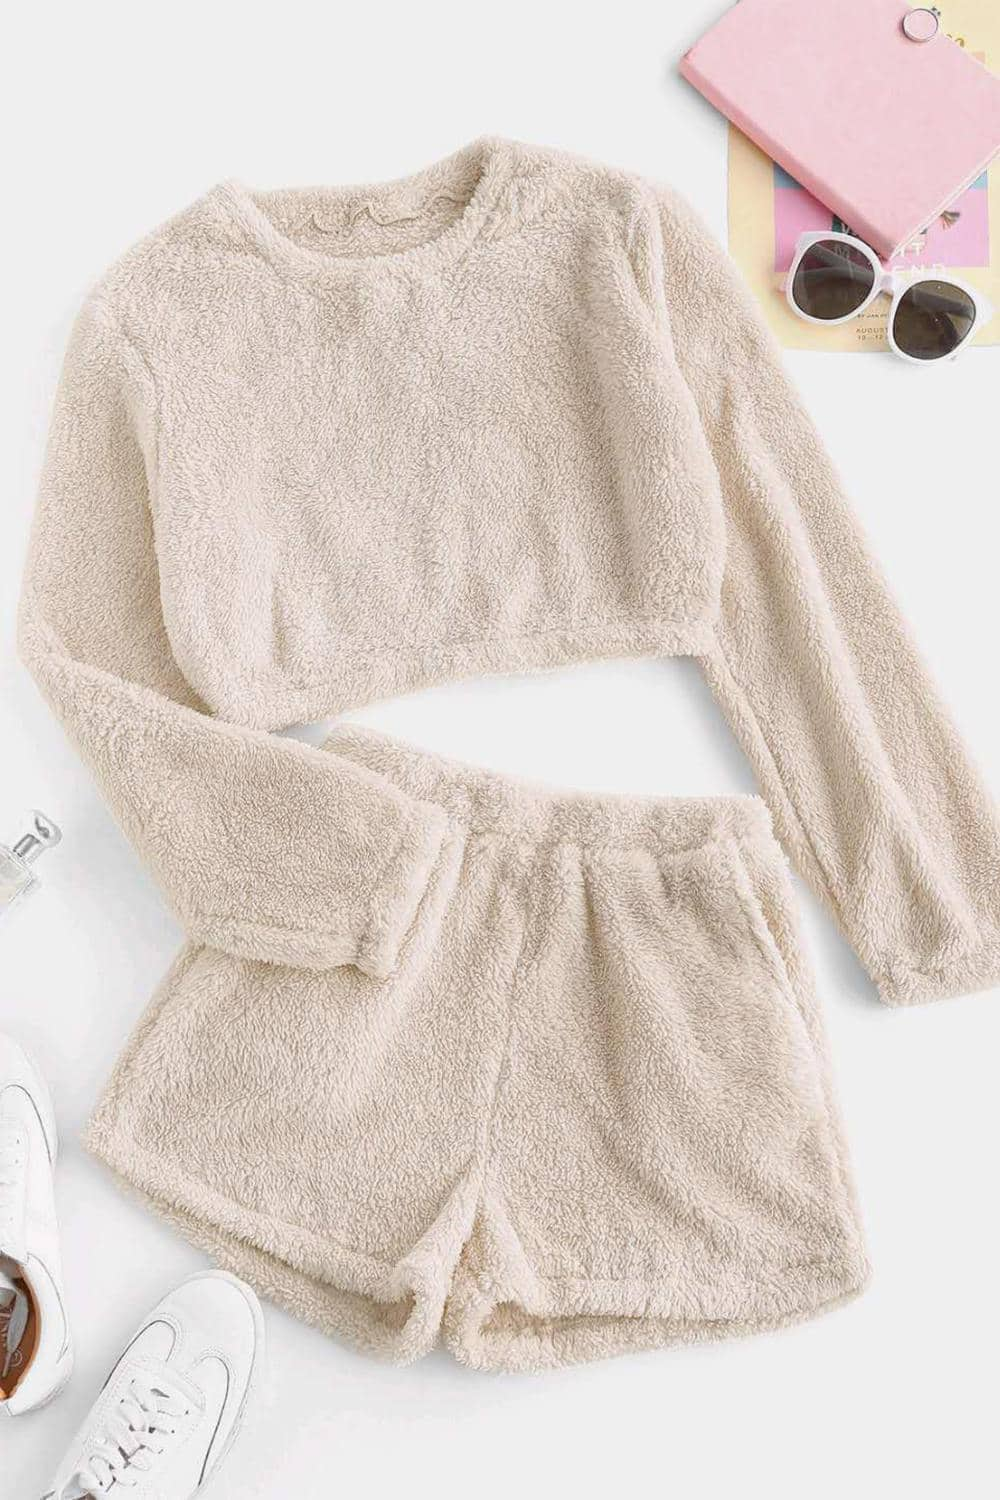 Comfy Teddy Crop Tops Shorts Loungewear Set